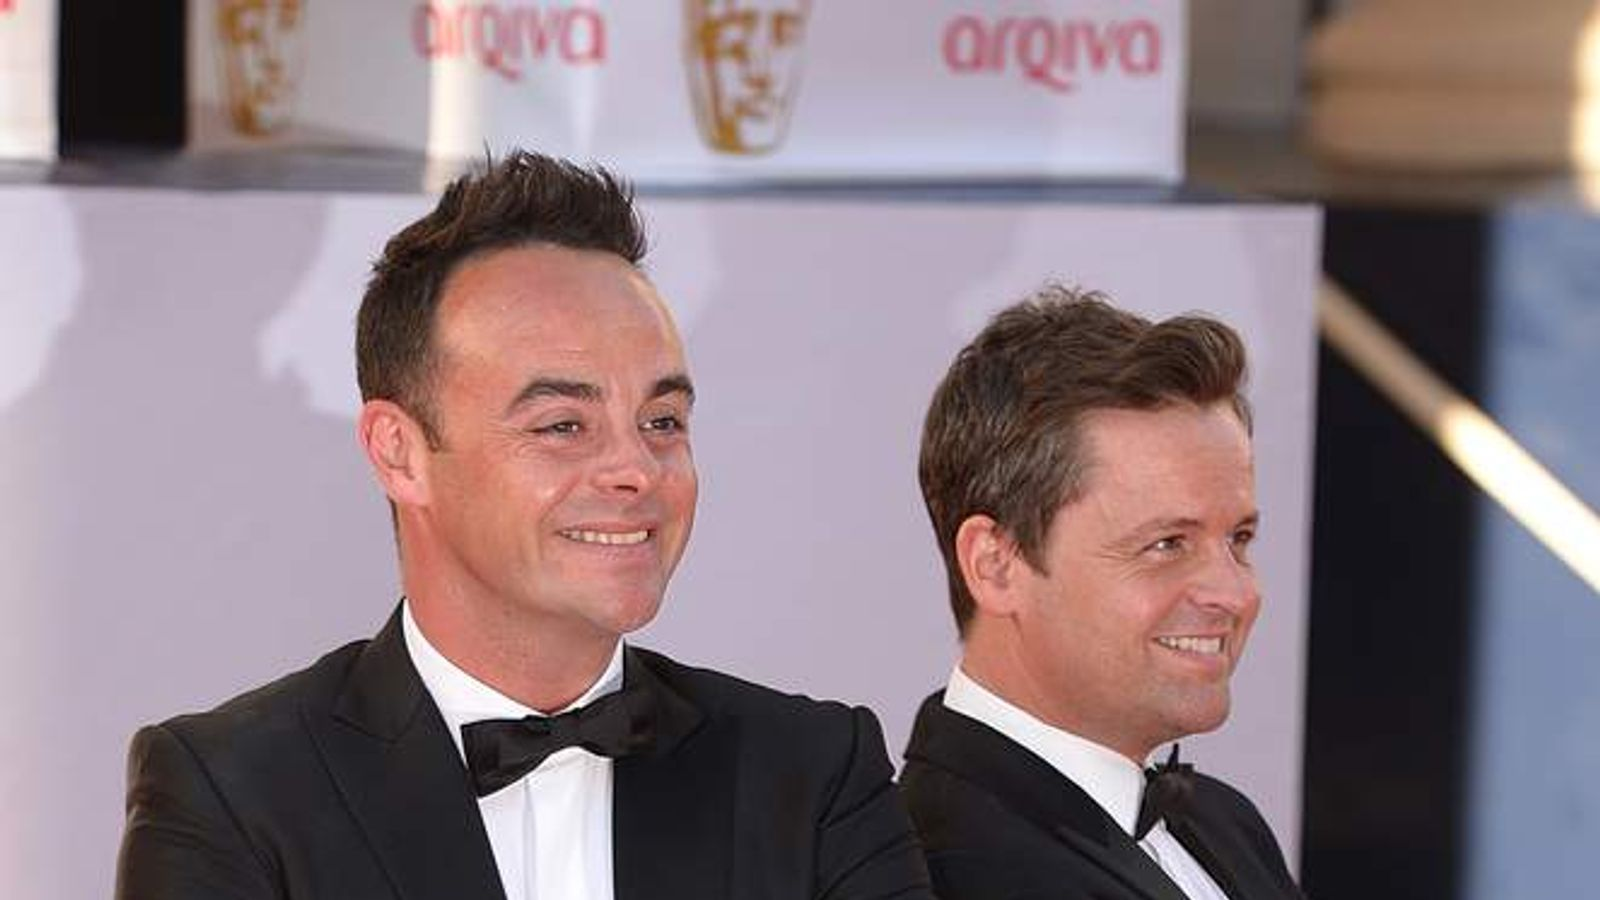 Ant and Dec at Bafta awards